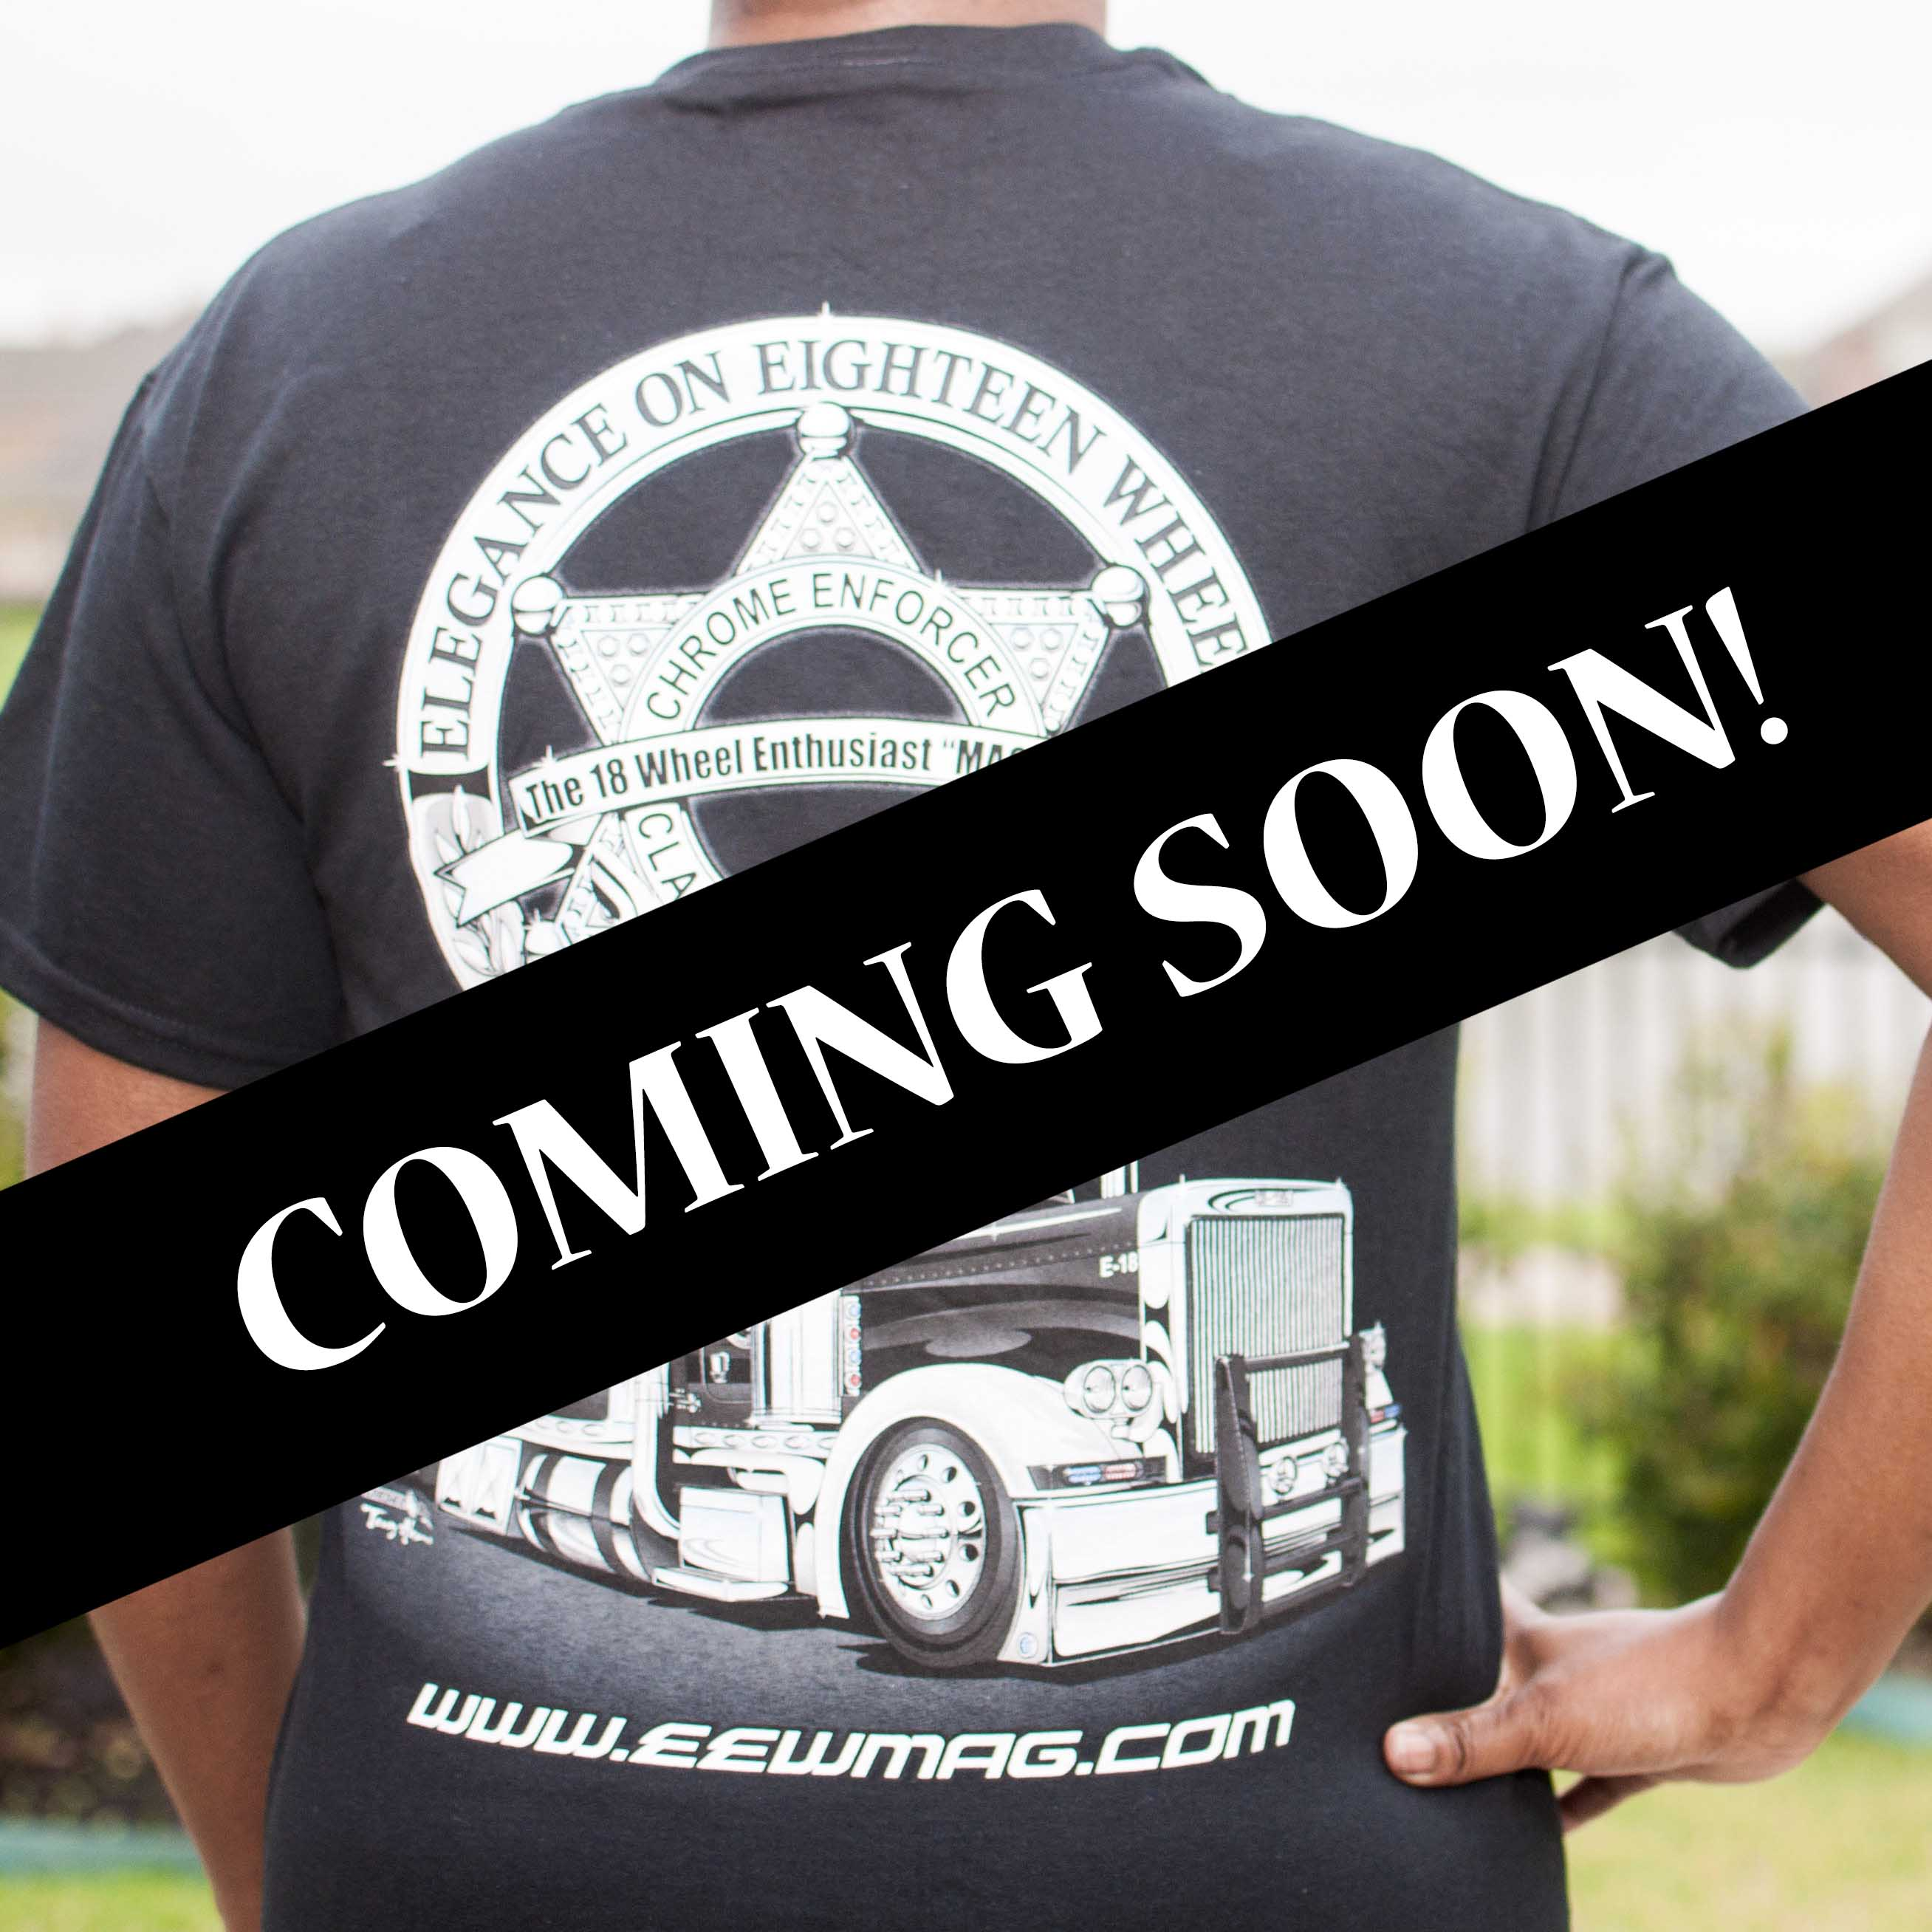 Coming soon Shirts